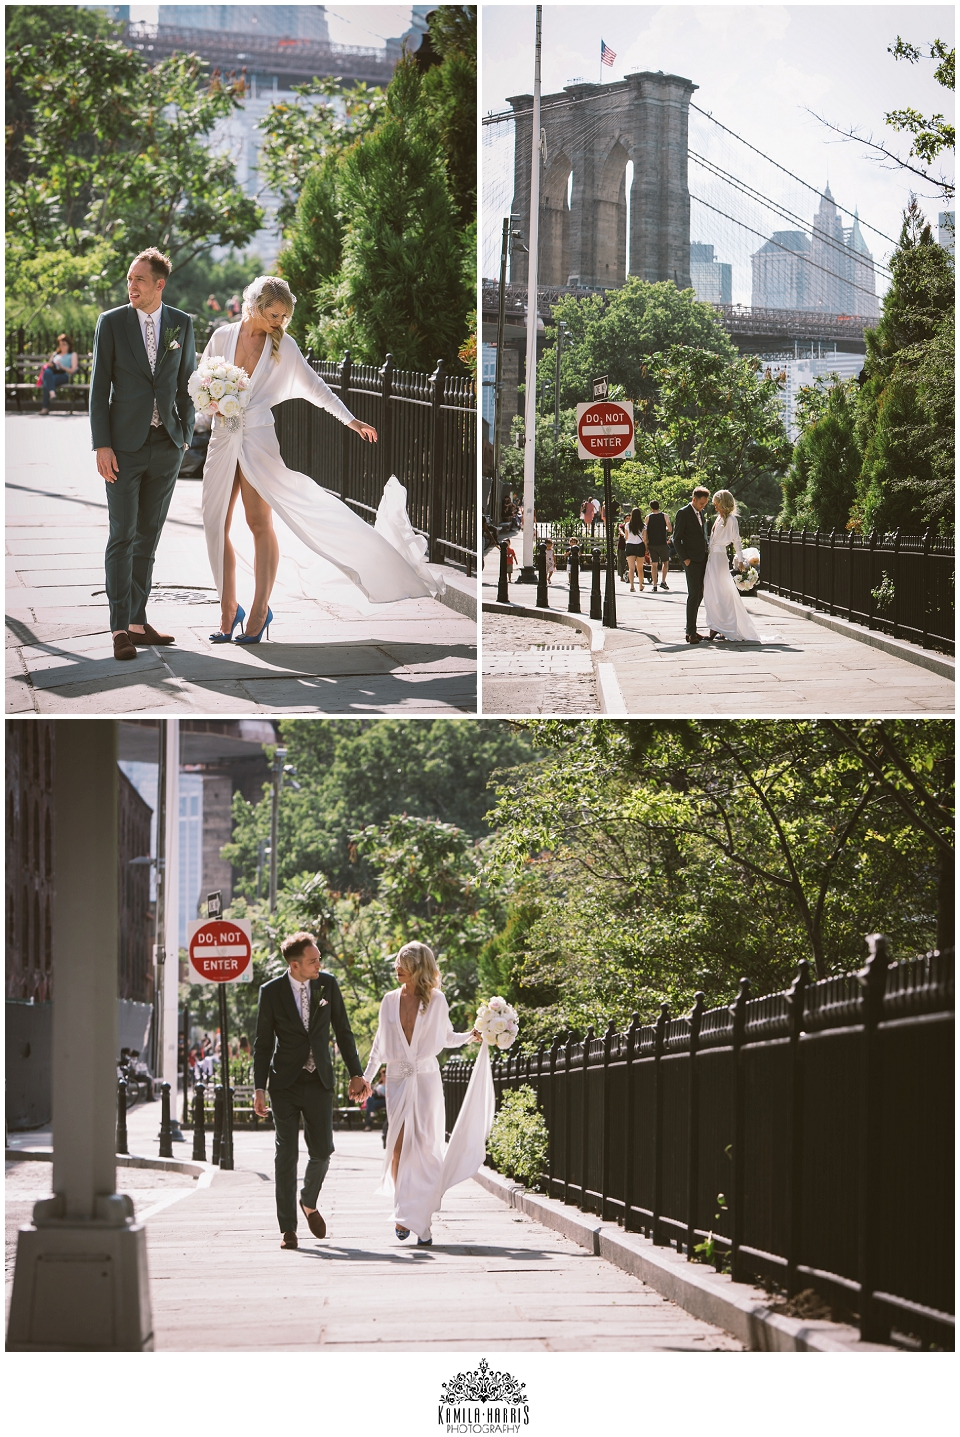 NYC Elopement Photography, Elope in NYC, Get Married in New York City, London, England, UK Couple gets married in NYC, Getting married in New York, Constantina Louise Wedding Gown